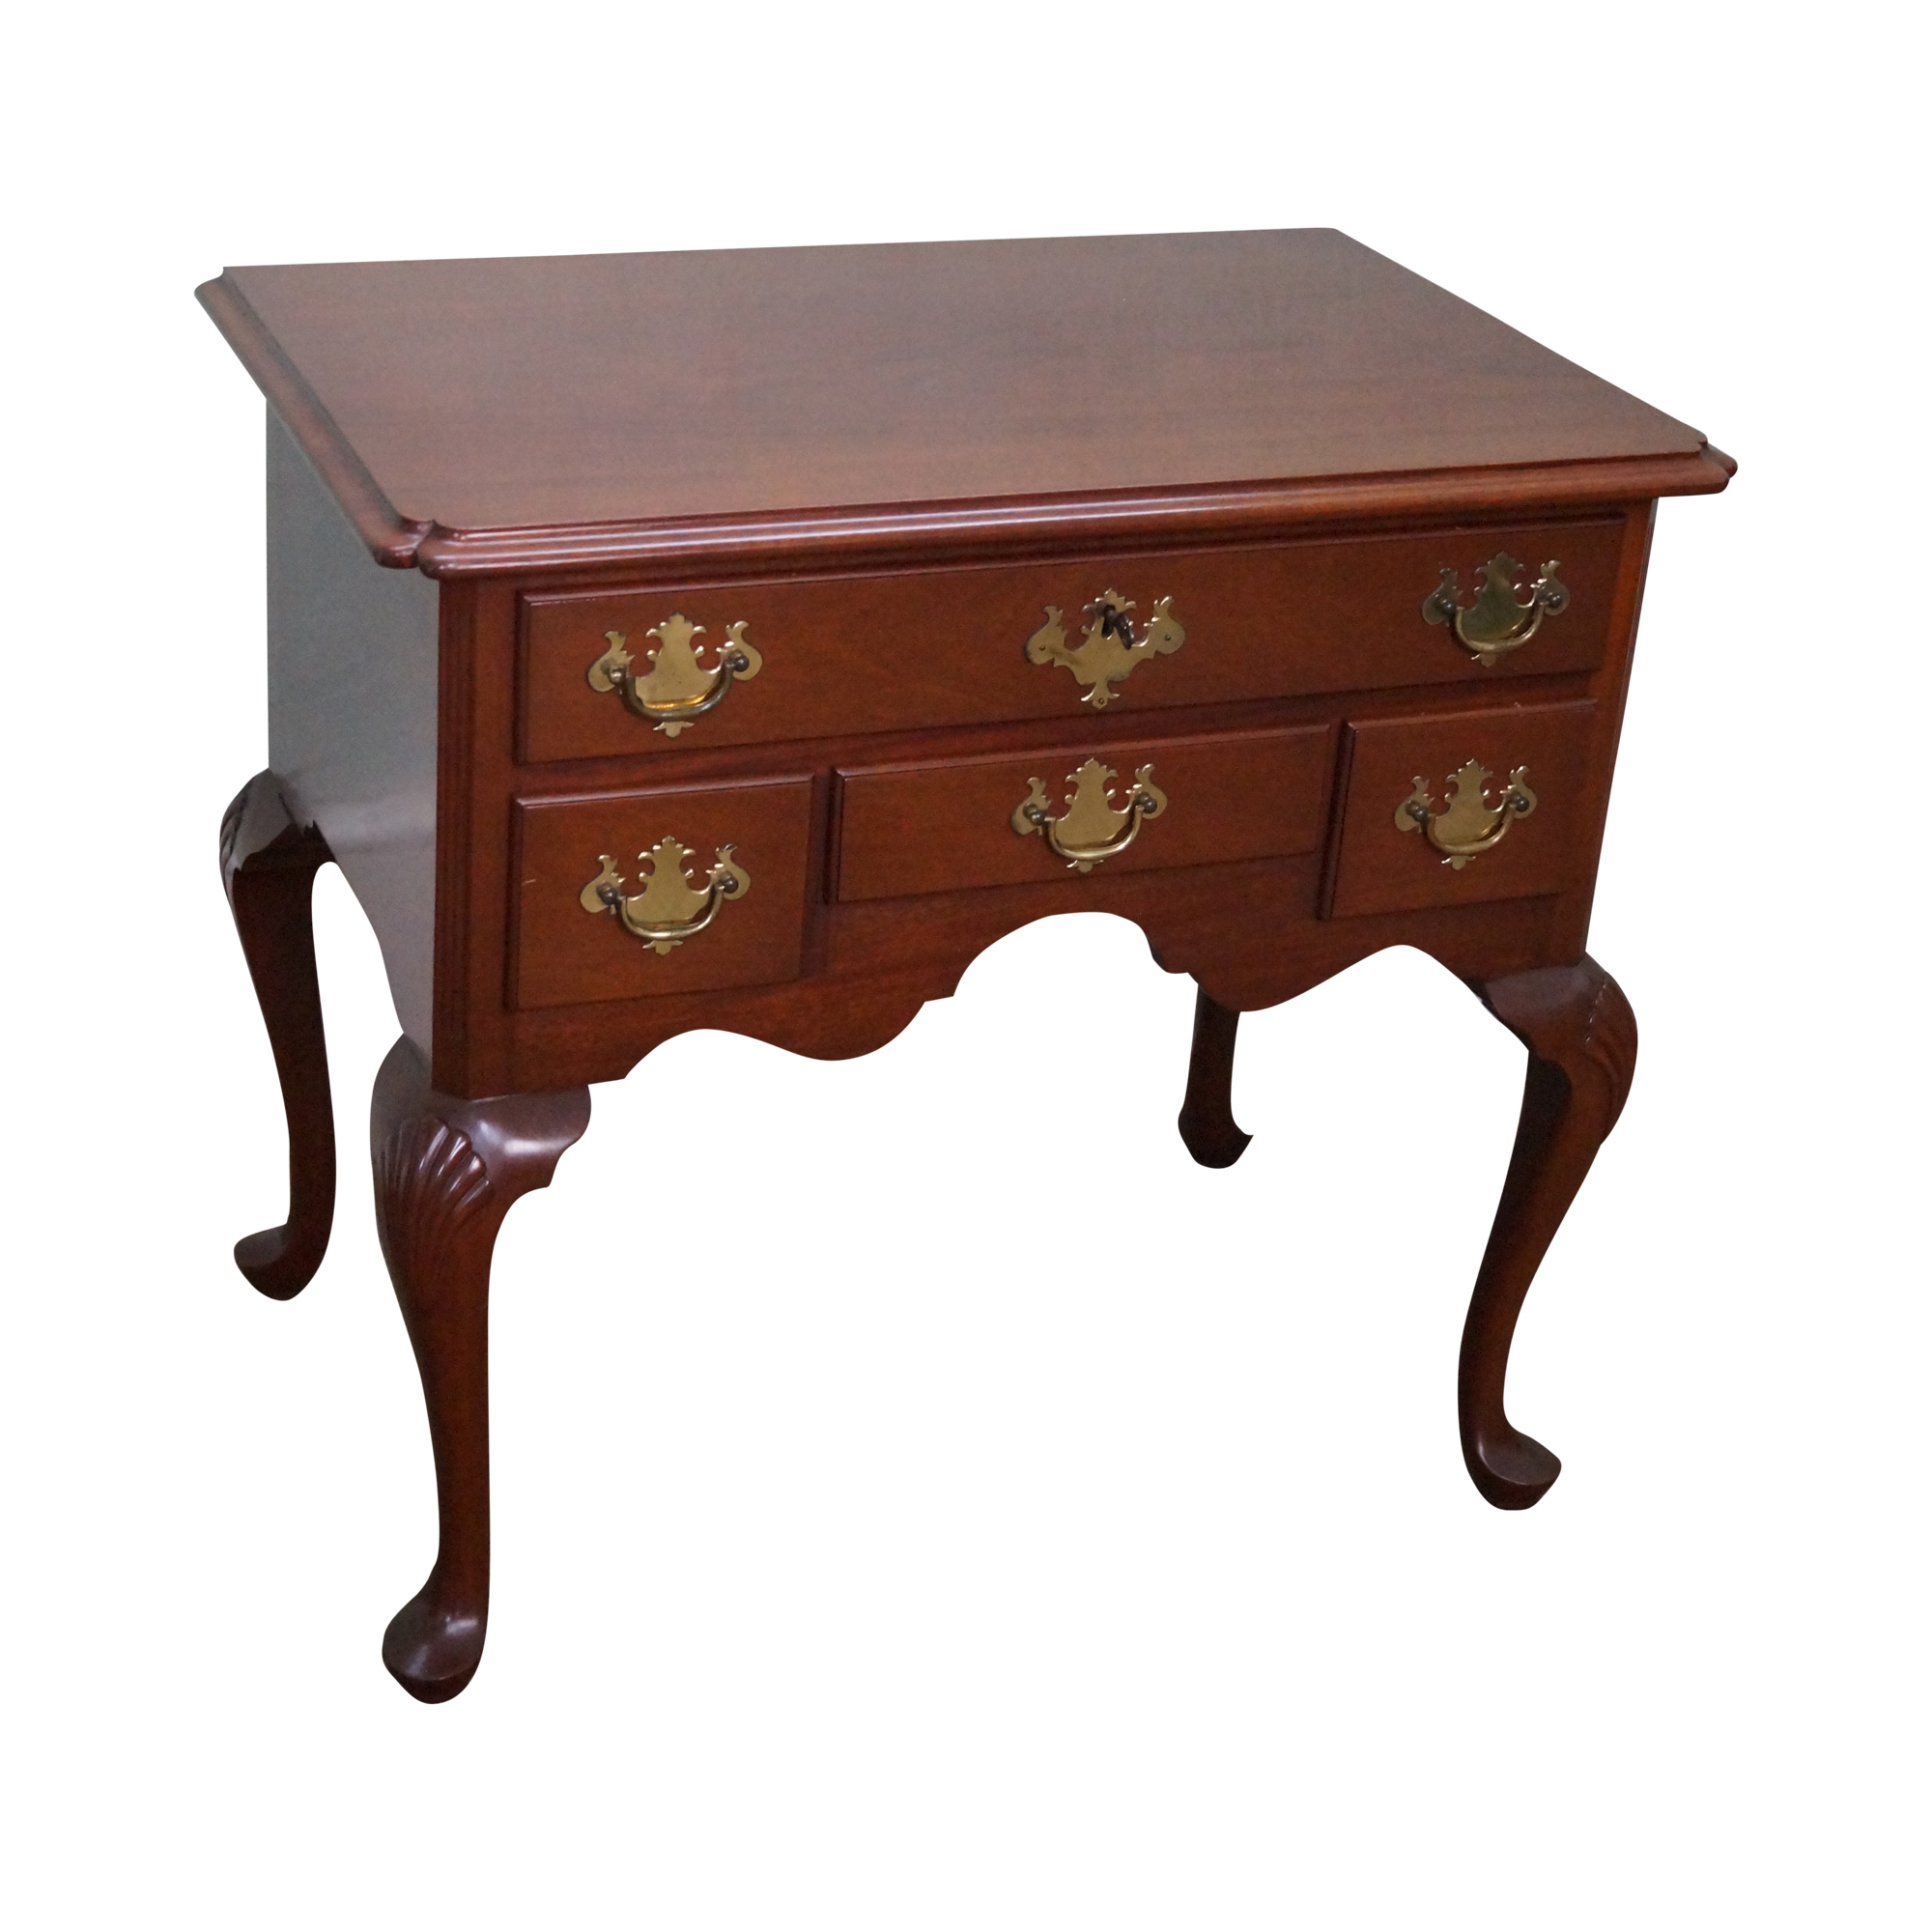 Queen Anne Style Solid Mahogany Low Boy Chairish : queen anne style solid mahogany low boy 5831 from www.chairish.com size 2000 x 2000 png 1615kB